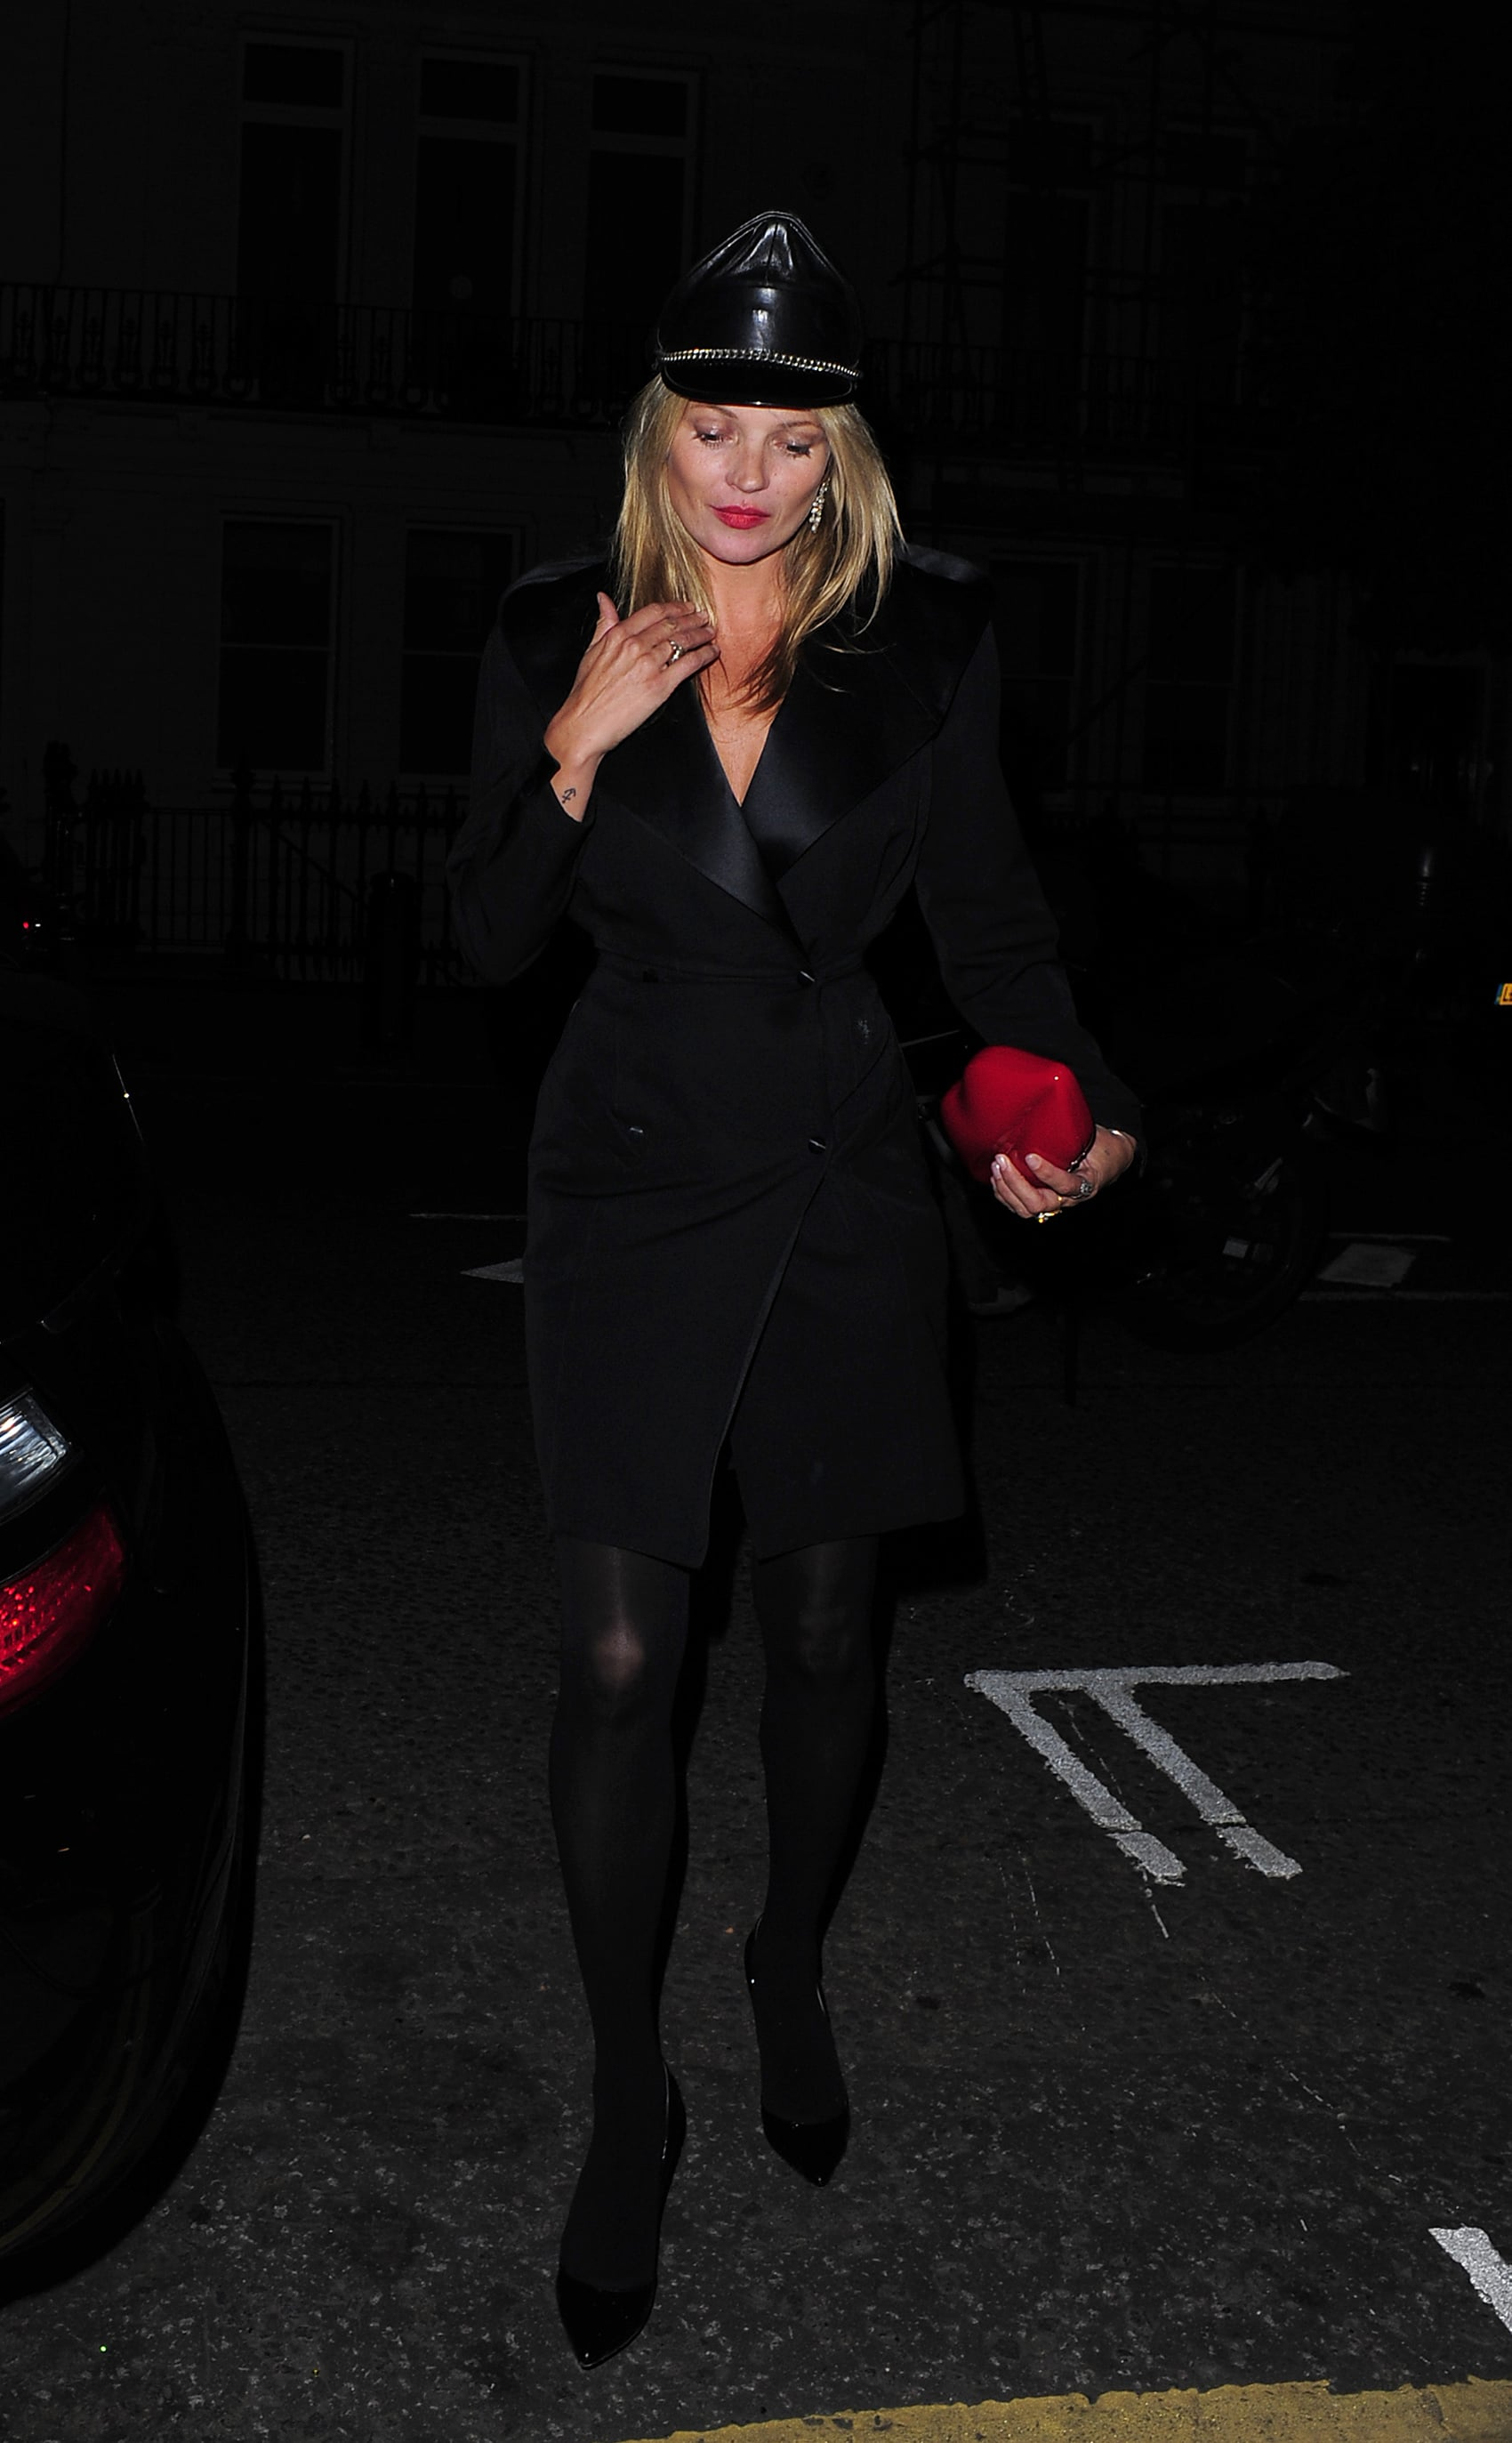 Kate Moss got dressed up for a costume party in honor of AnOther Magazine's anniversary.